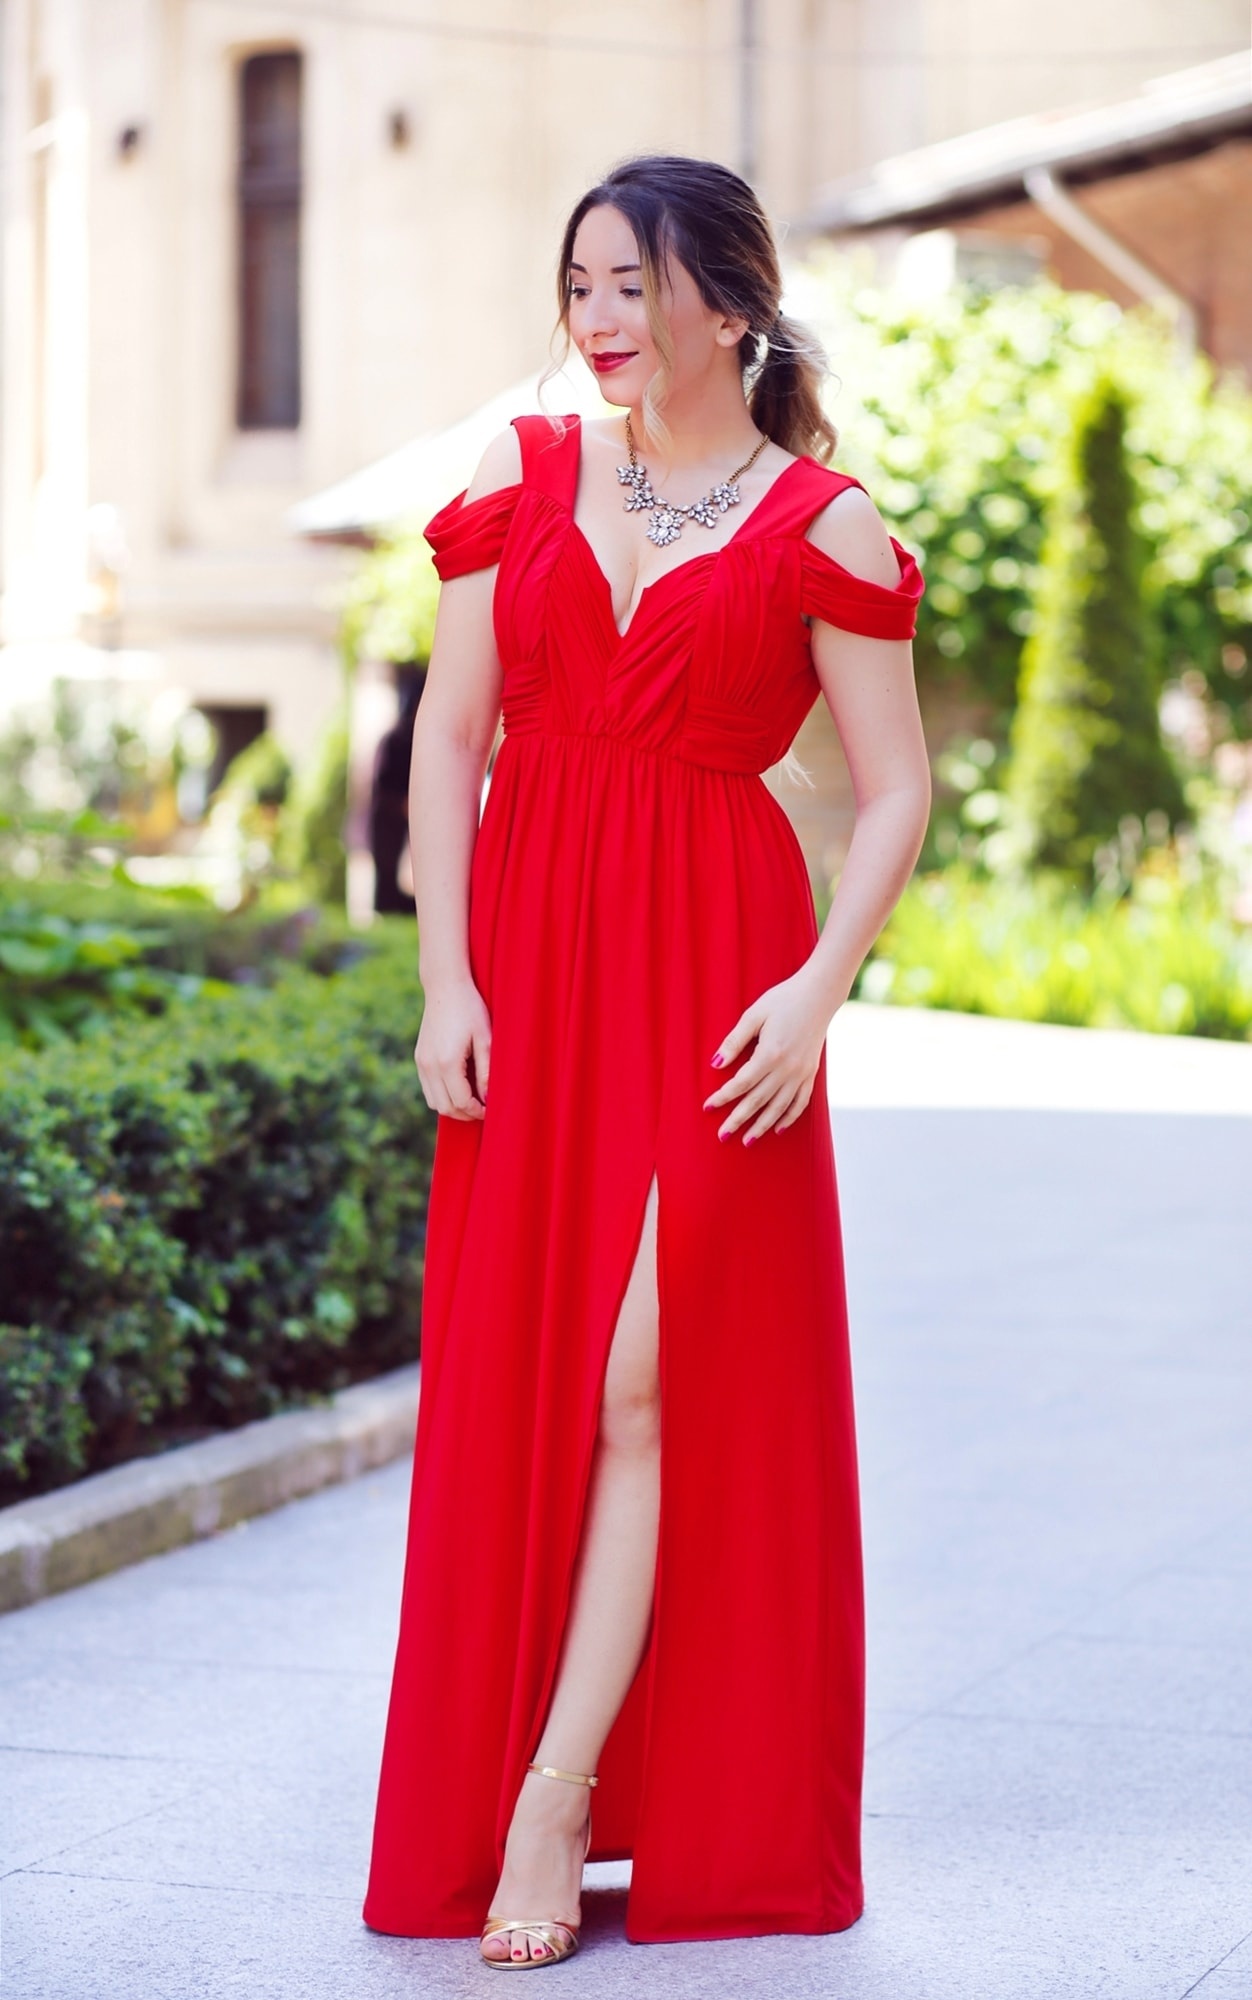 Asos long red dress - fashion blogger andreea ristea